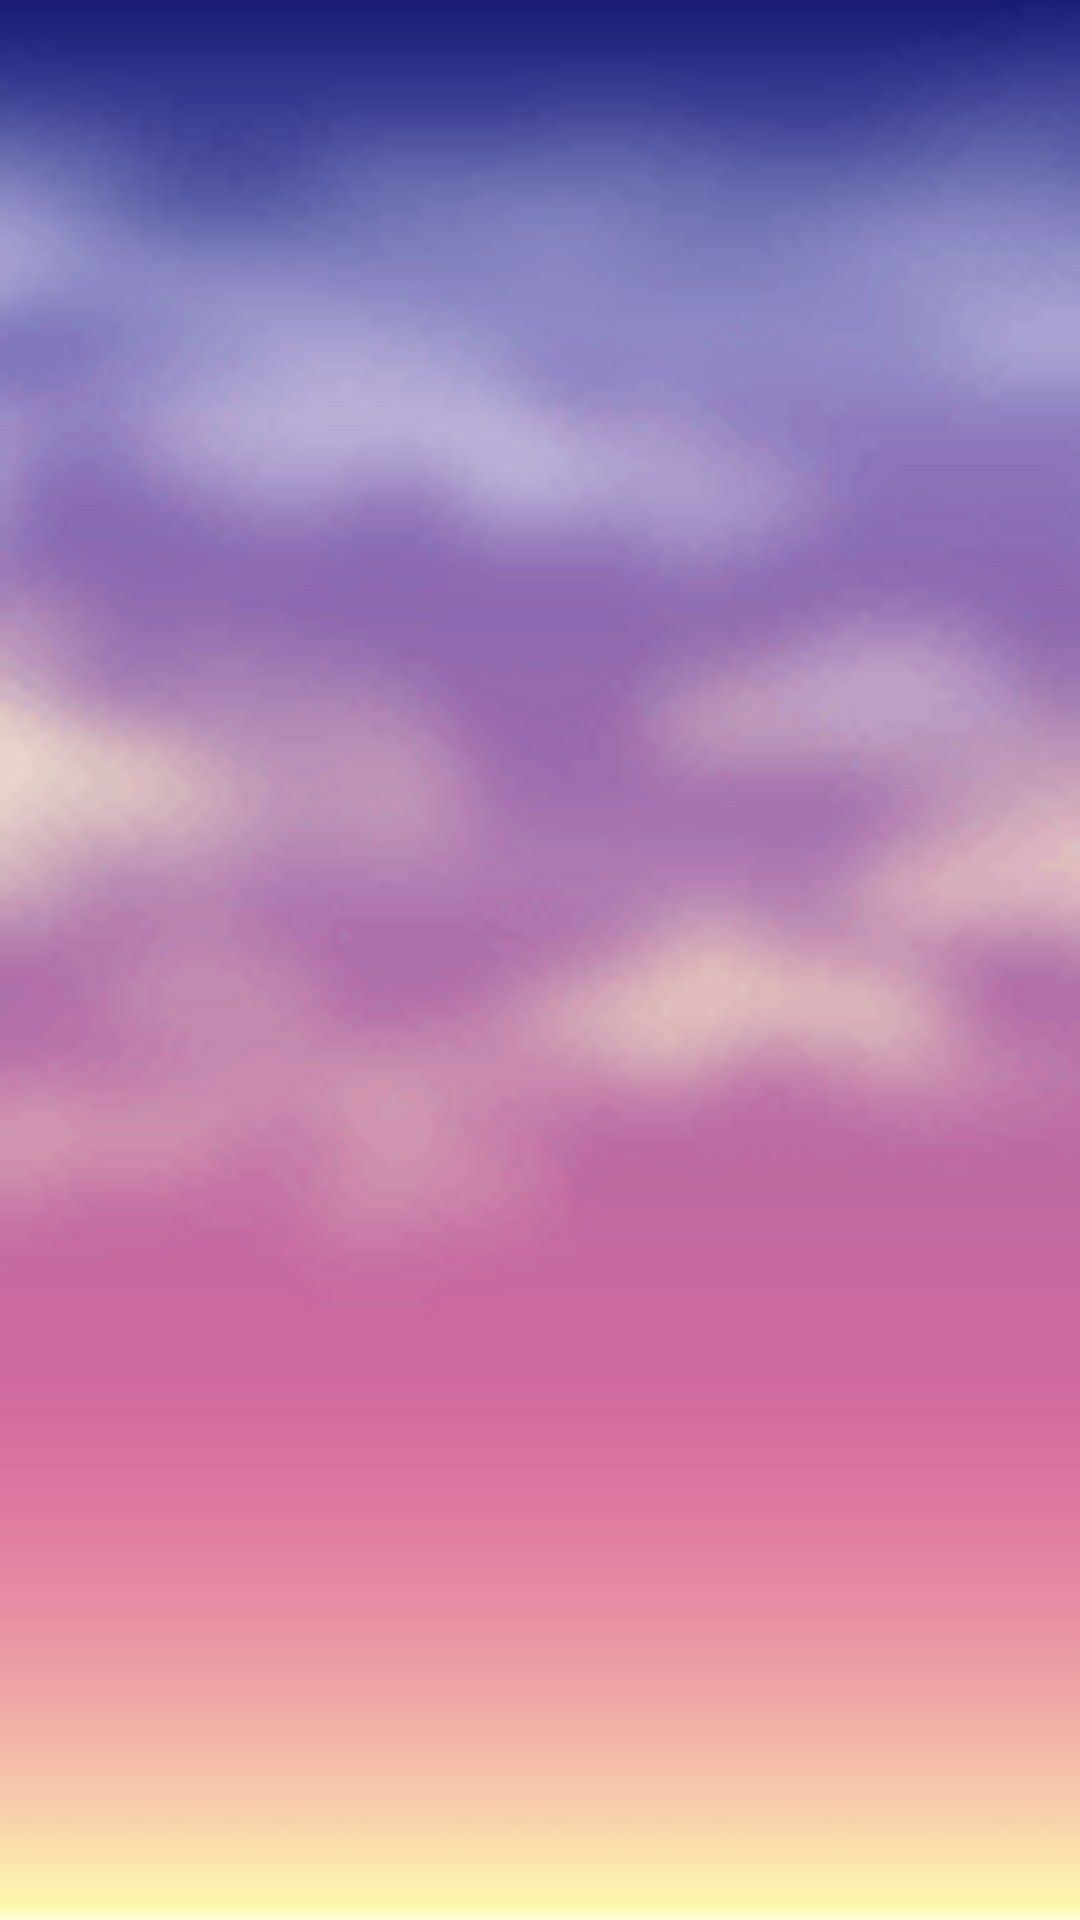 sky twilight - Tap to see more Static dynamic wallpapers! - @mobile9